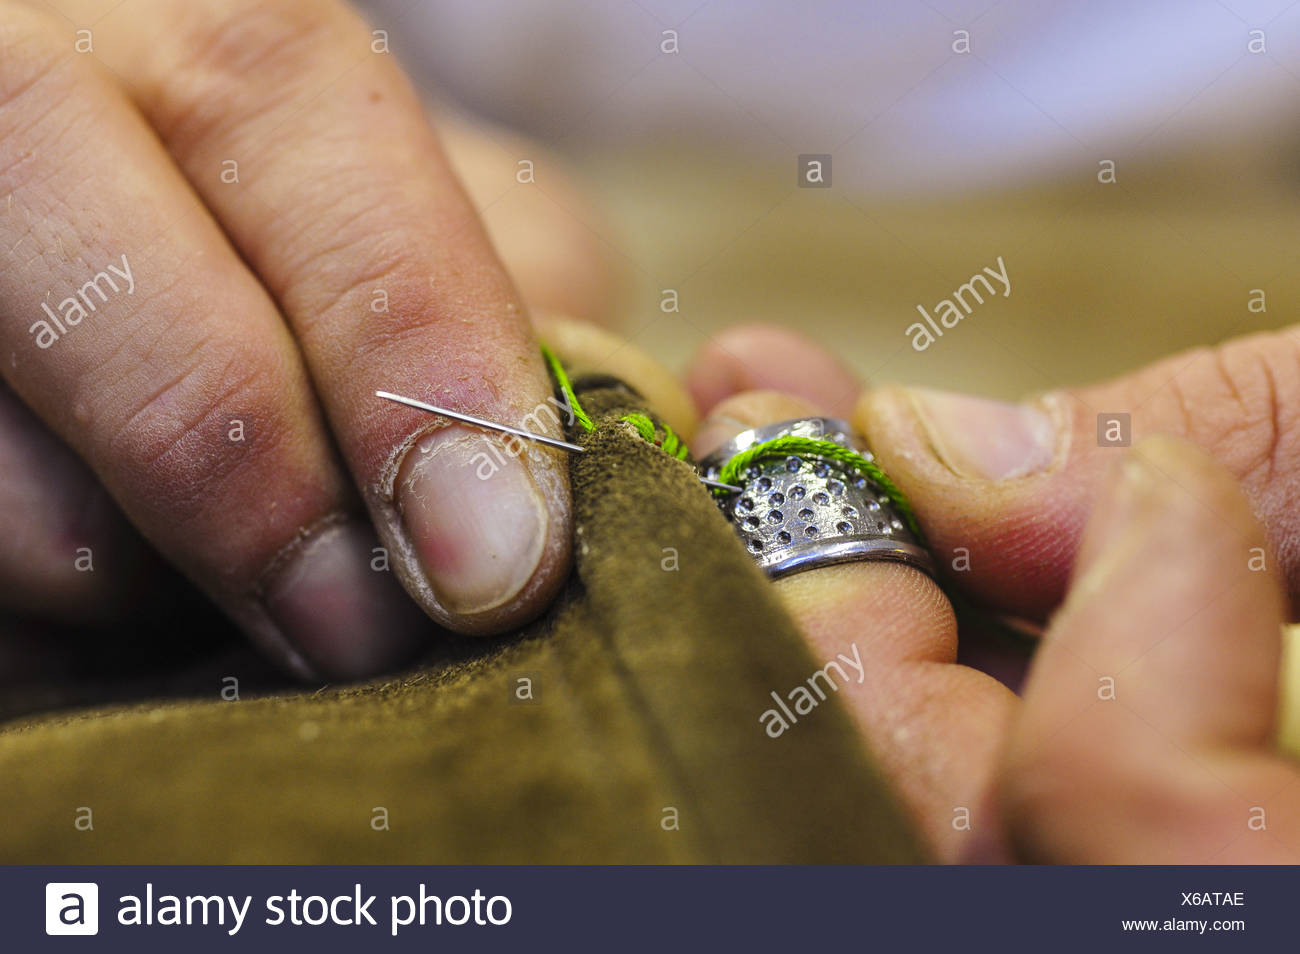 production, leather trousers, Austria - Stock Image